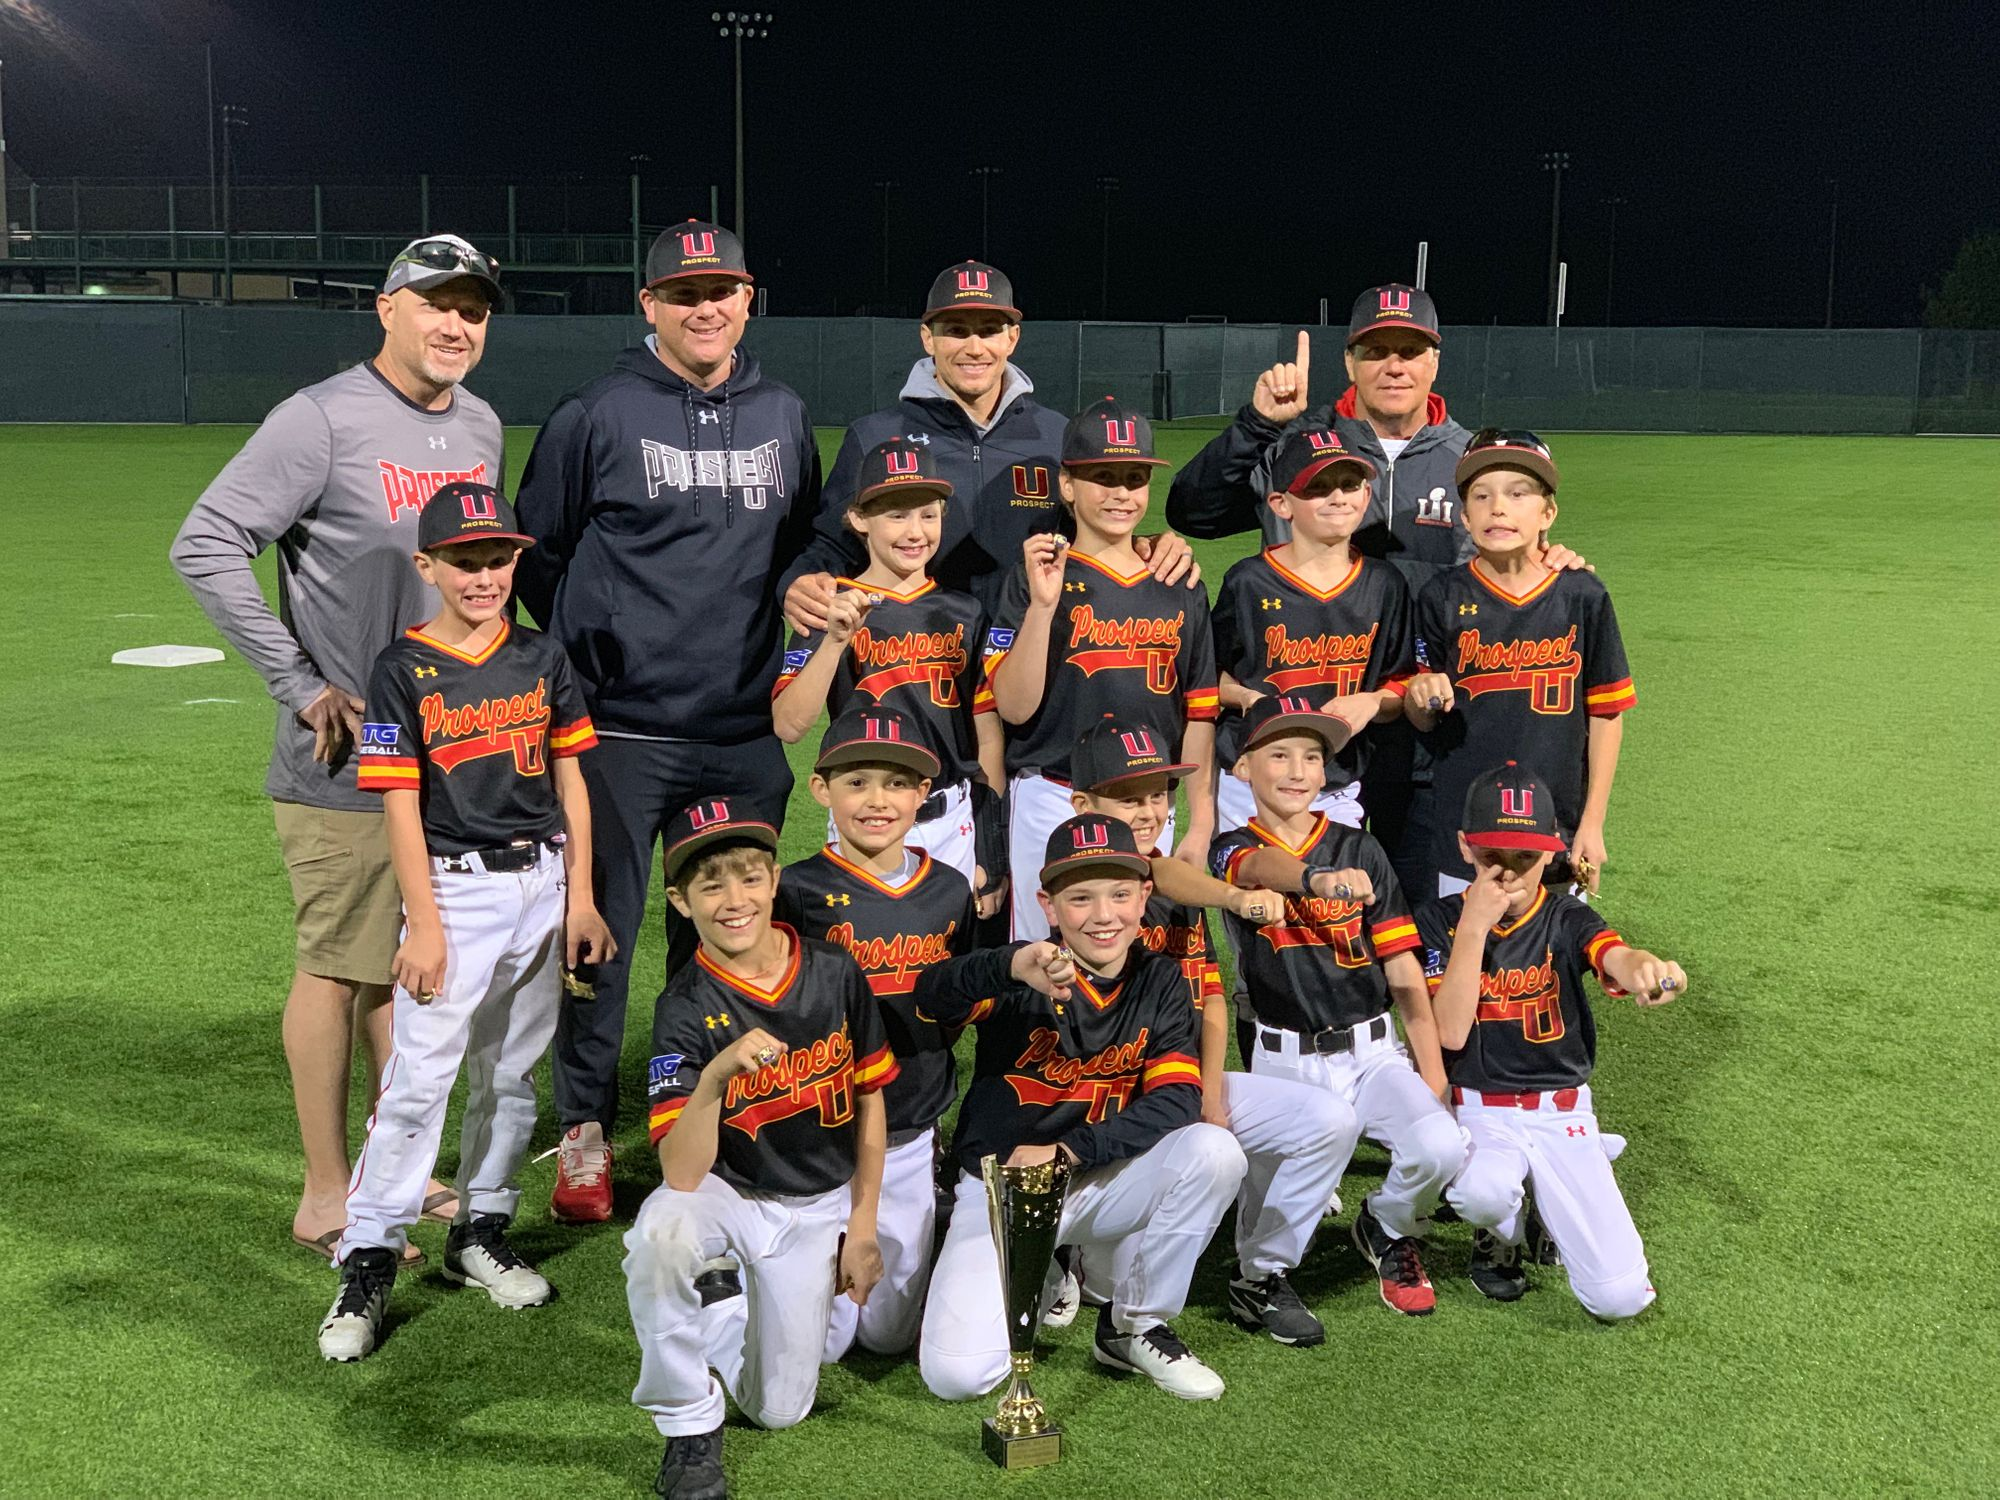 Prospect United 10u Rolls Through This Weekend Going 5 0 And Bringing Home The Title Www Bigleagueedge Com Travel Baseball Baseball Team The Unit